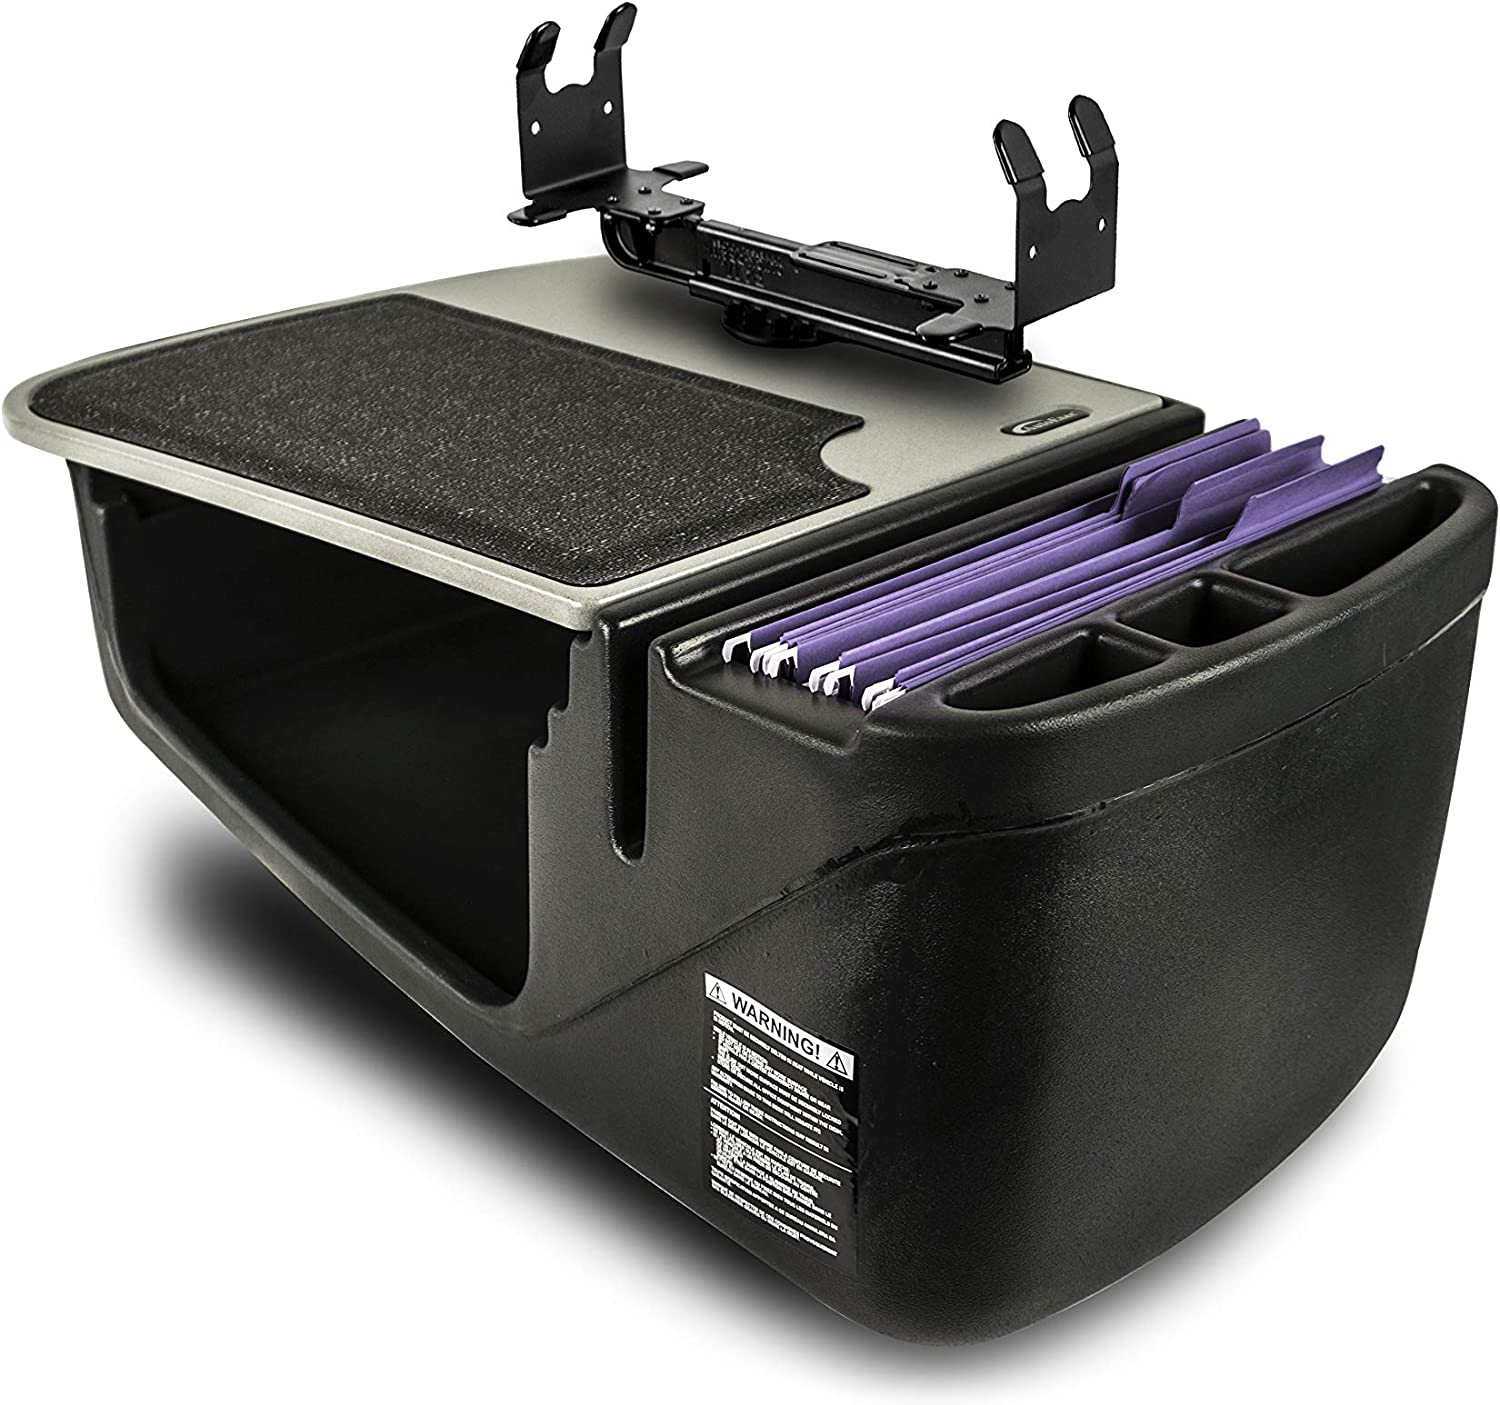 AutoExec AUE24000 NEW before selling Efficiency GripMaster Car Max 61% OFF wit Finish Grey Desk